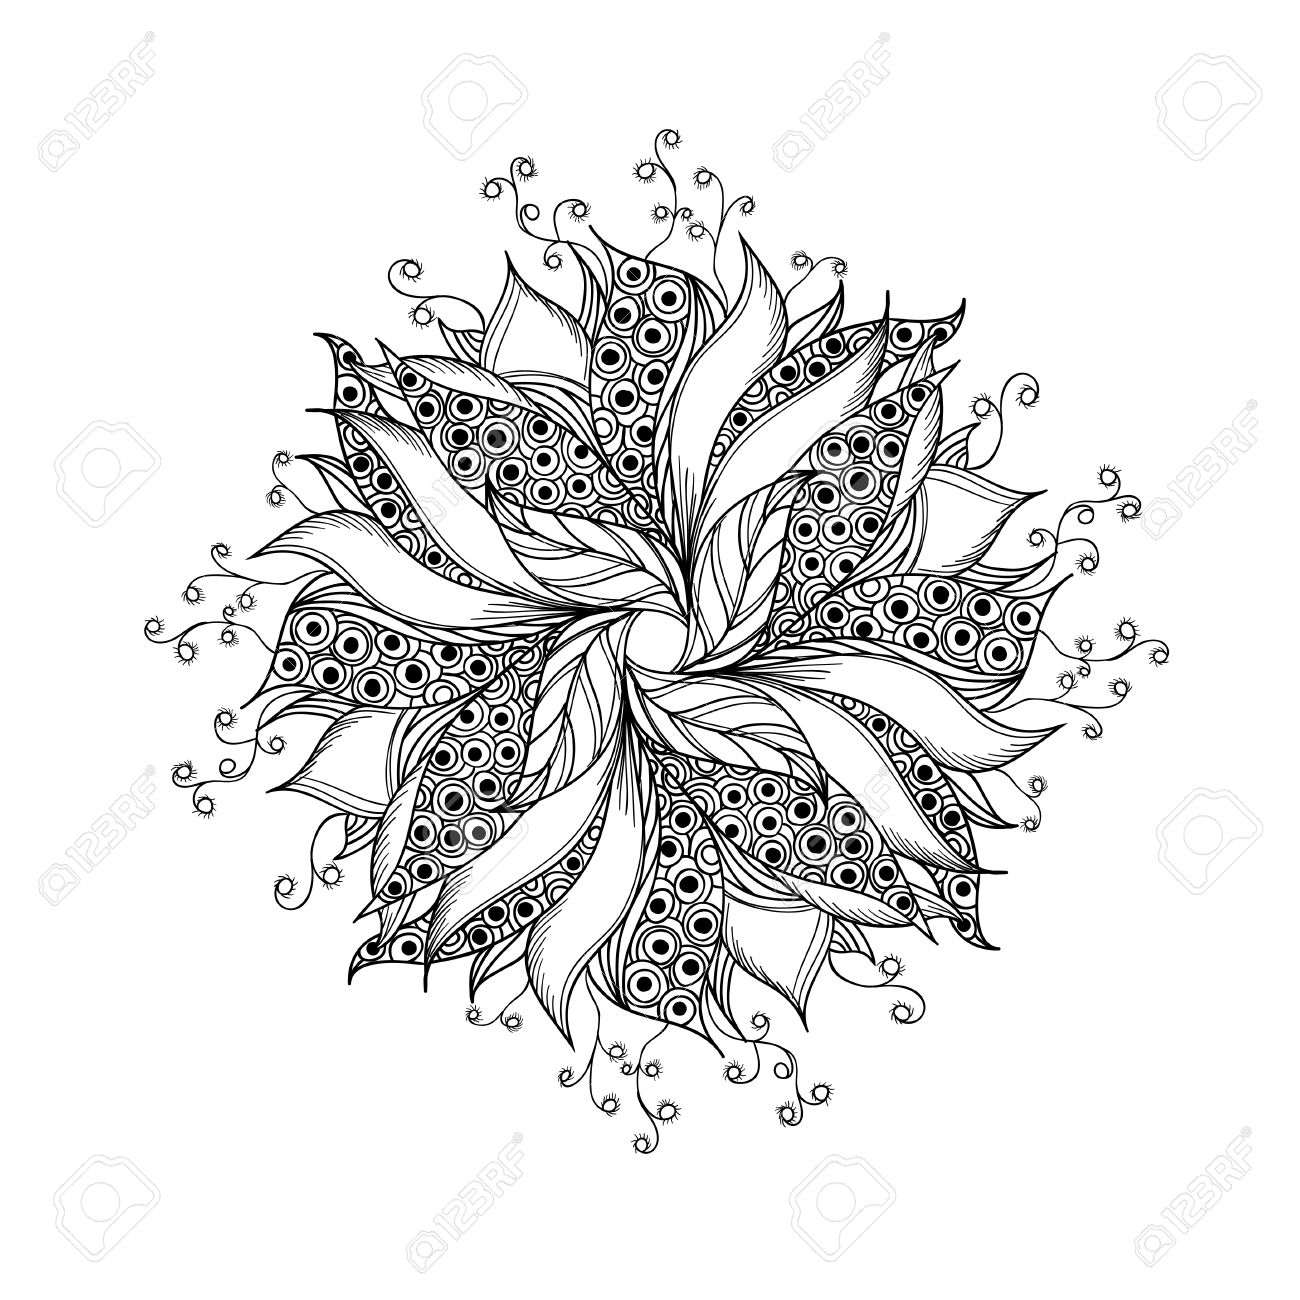 Blumen Tattoo Schwarz Weiß Stock Photo